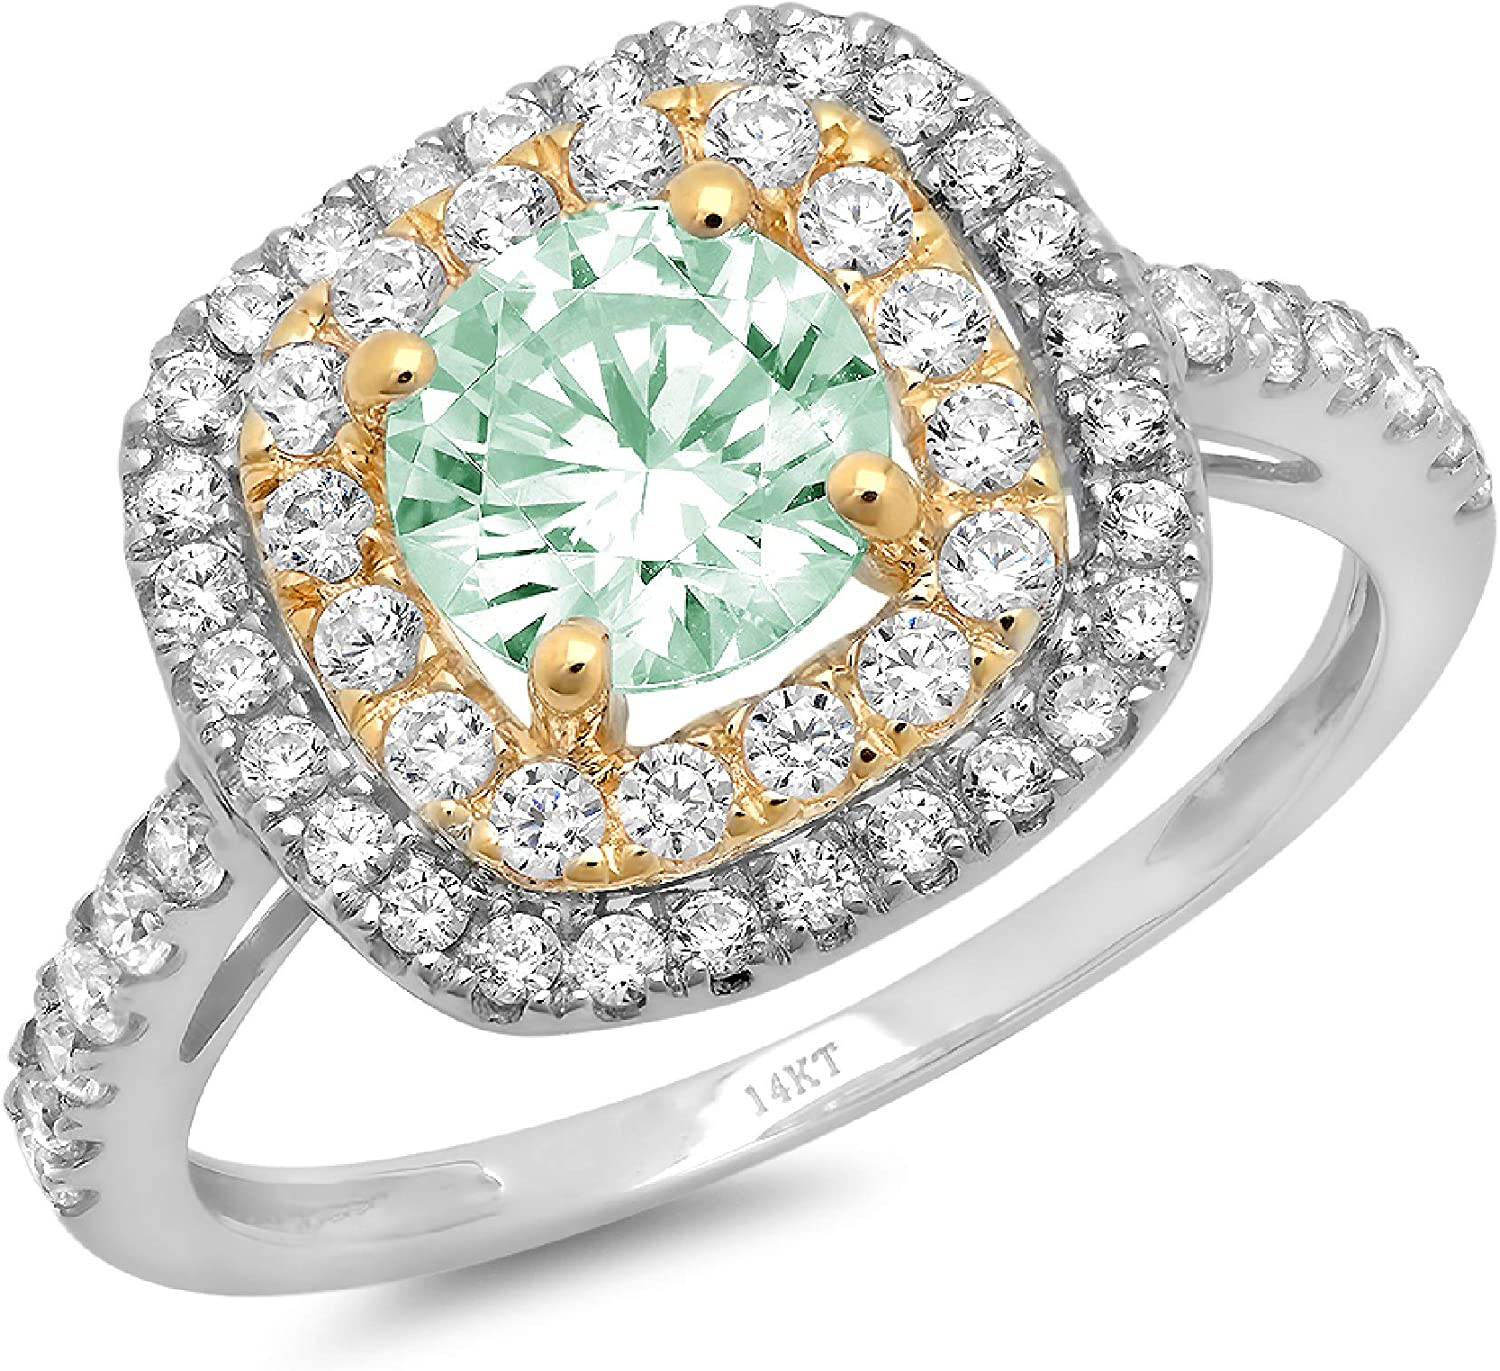 1.75 ct Round Cut Solitaire accent double Halo Davidsonite Mint Green Simulated Diamond Ideal VVS1 Engagement Promise Statement Anniversary Bridal Wedding Ring 14k White & Yellow Gold